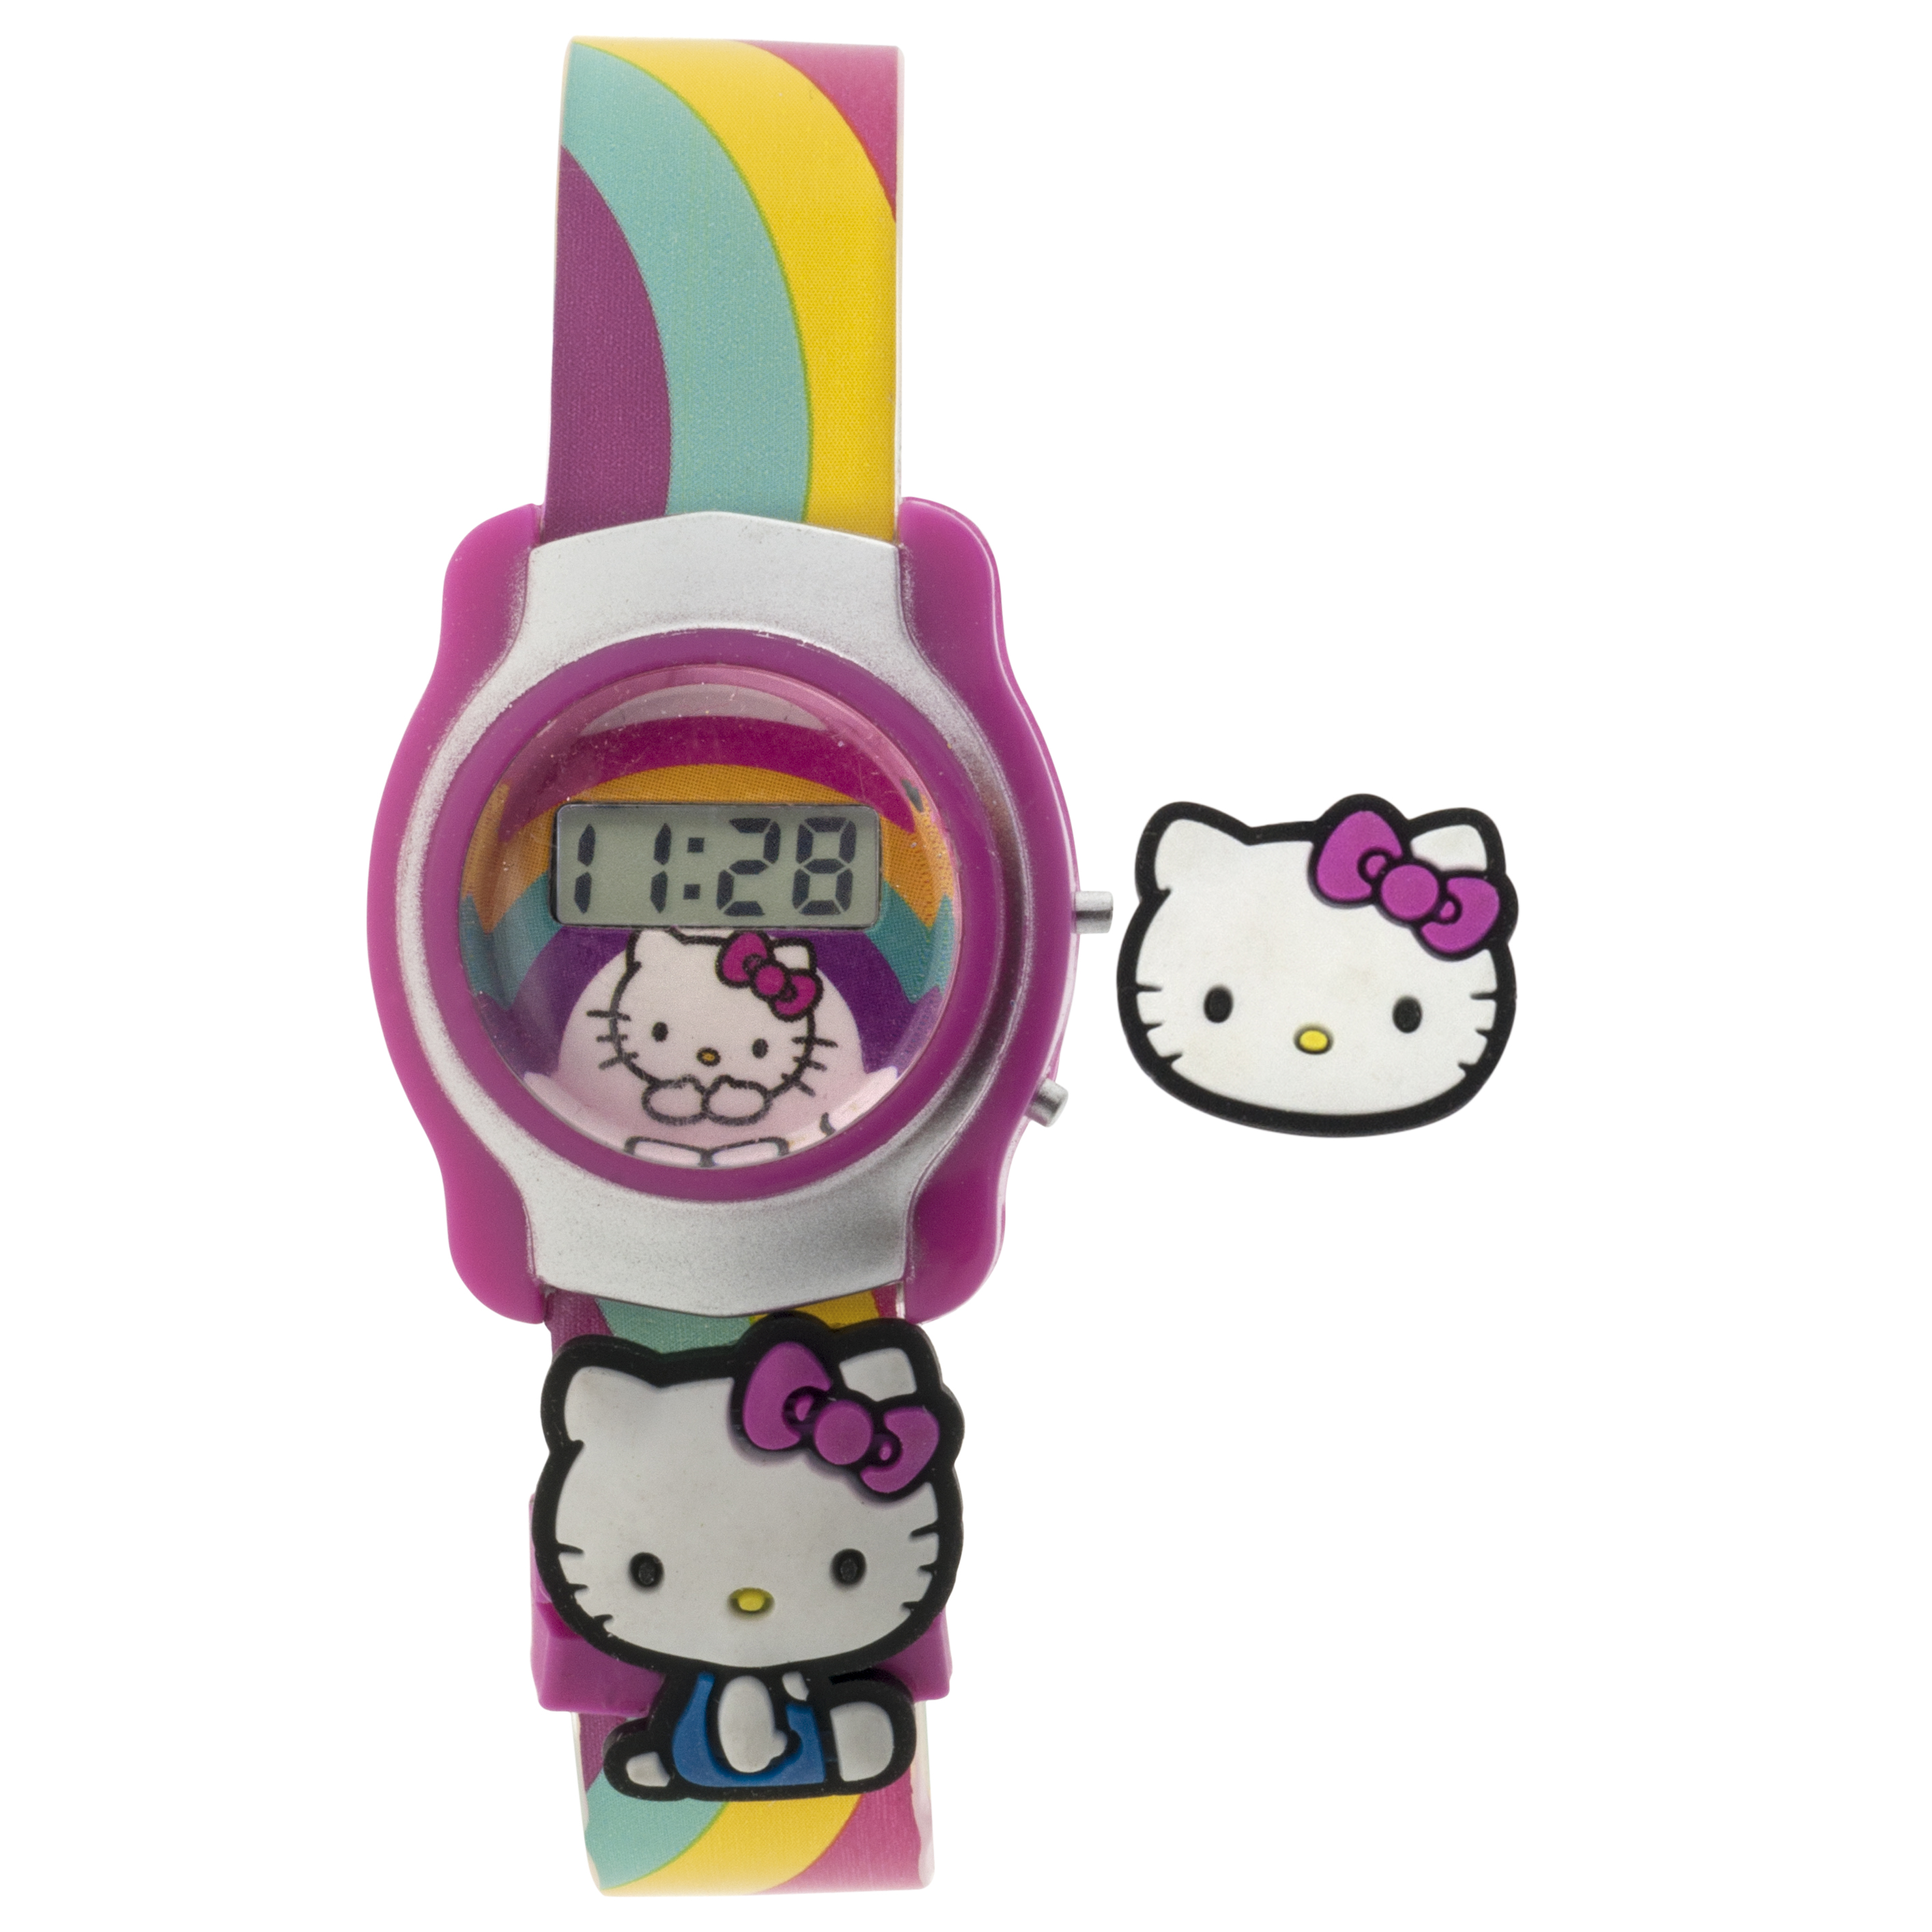 Toy Hello Kitty Watch : Hello kitty slide on lcd watch jewelry watches